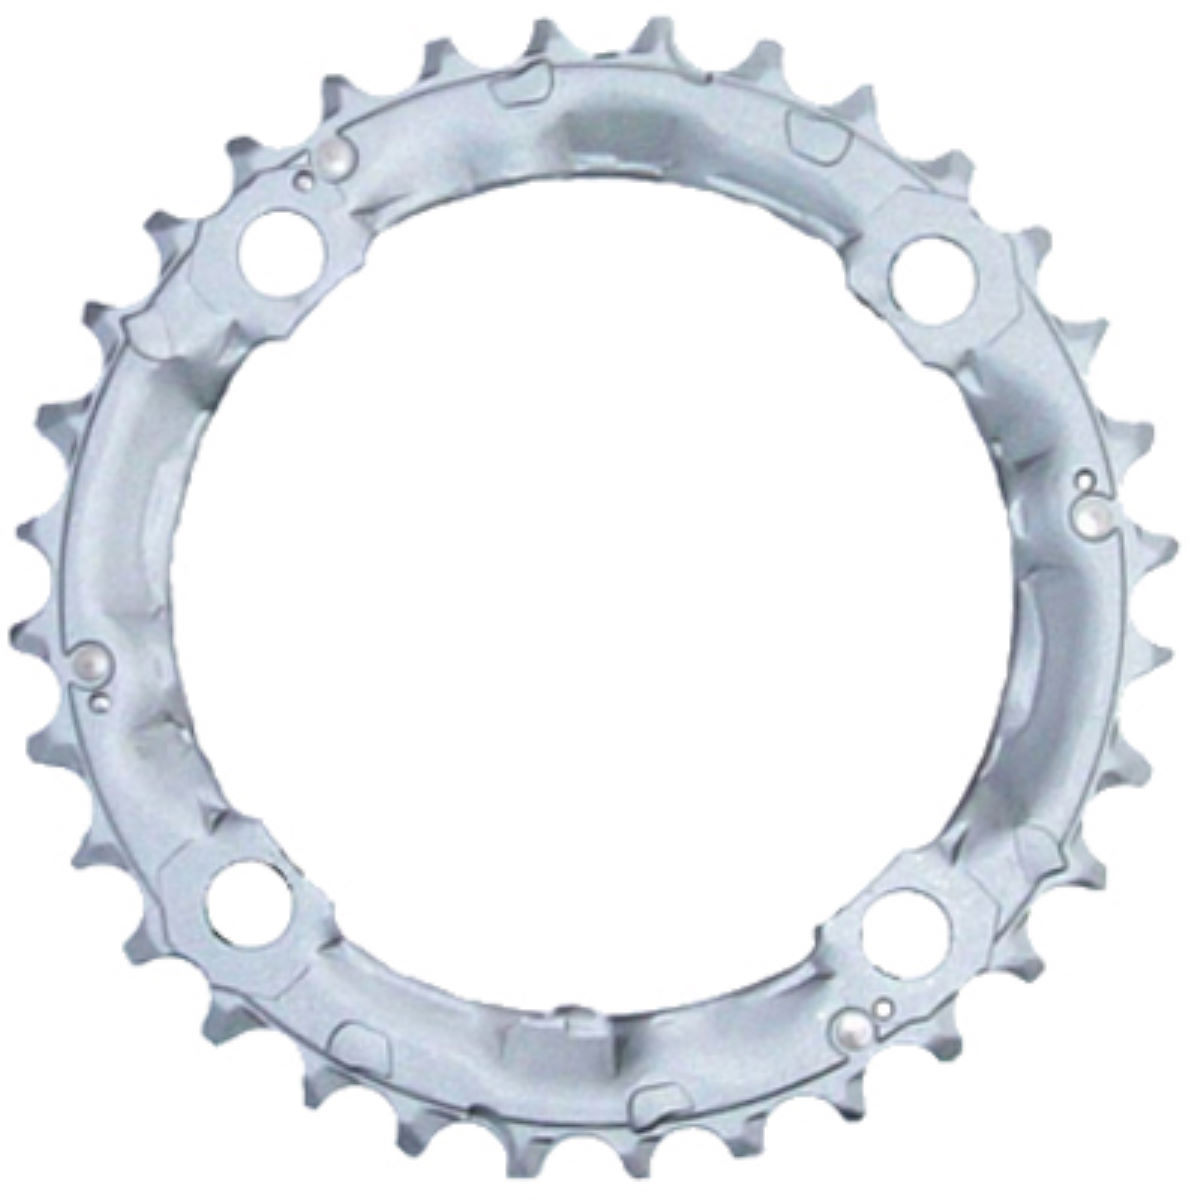 Shimano Deore Fcm510 Triple Chainrings - 36t 9 Speed 104 Silver